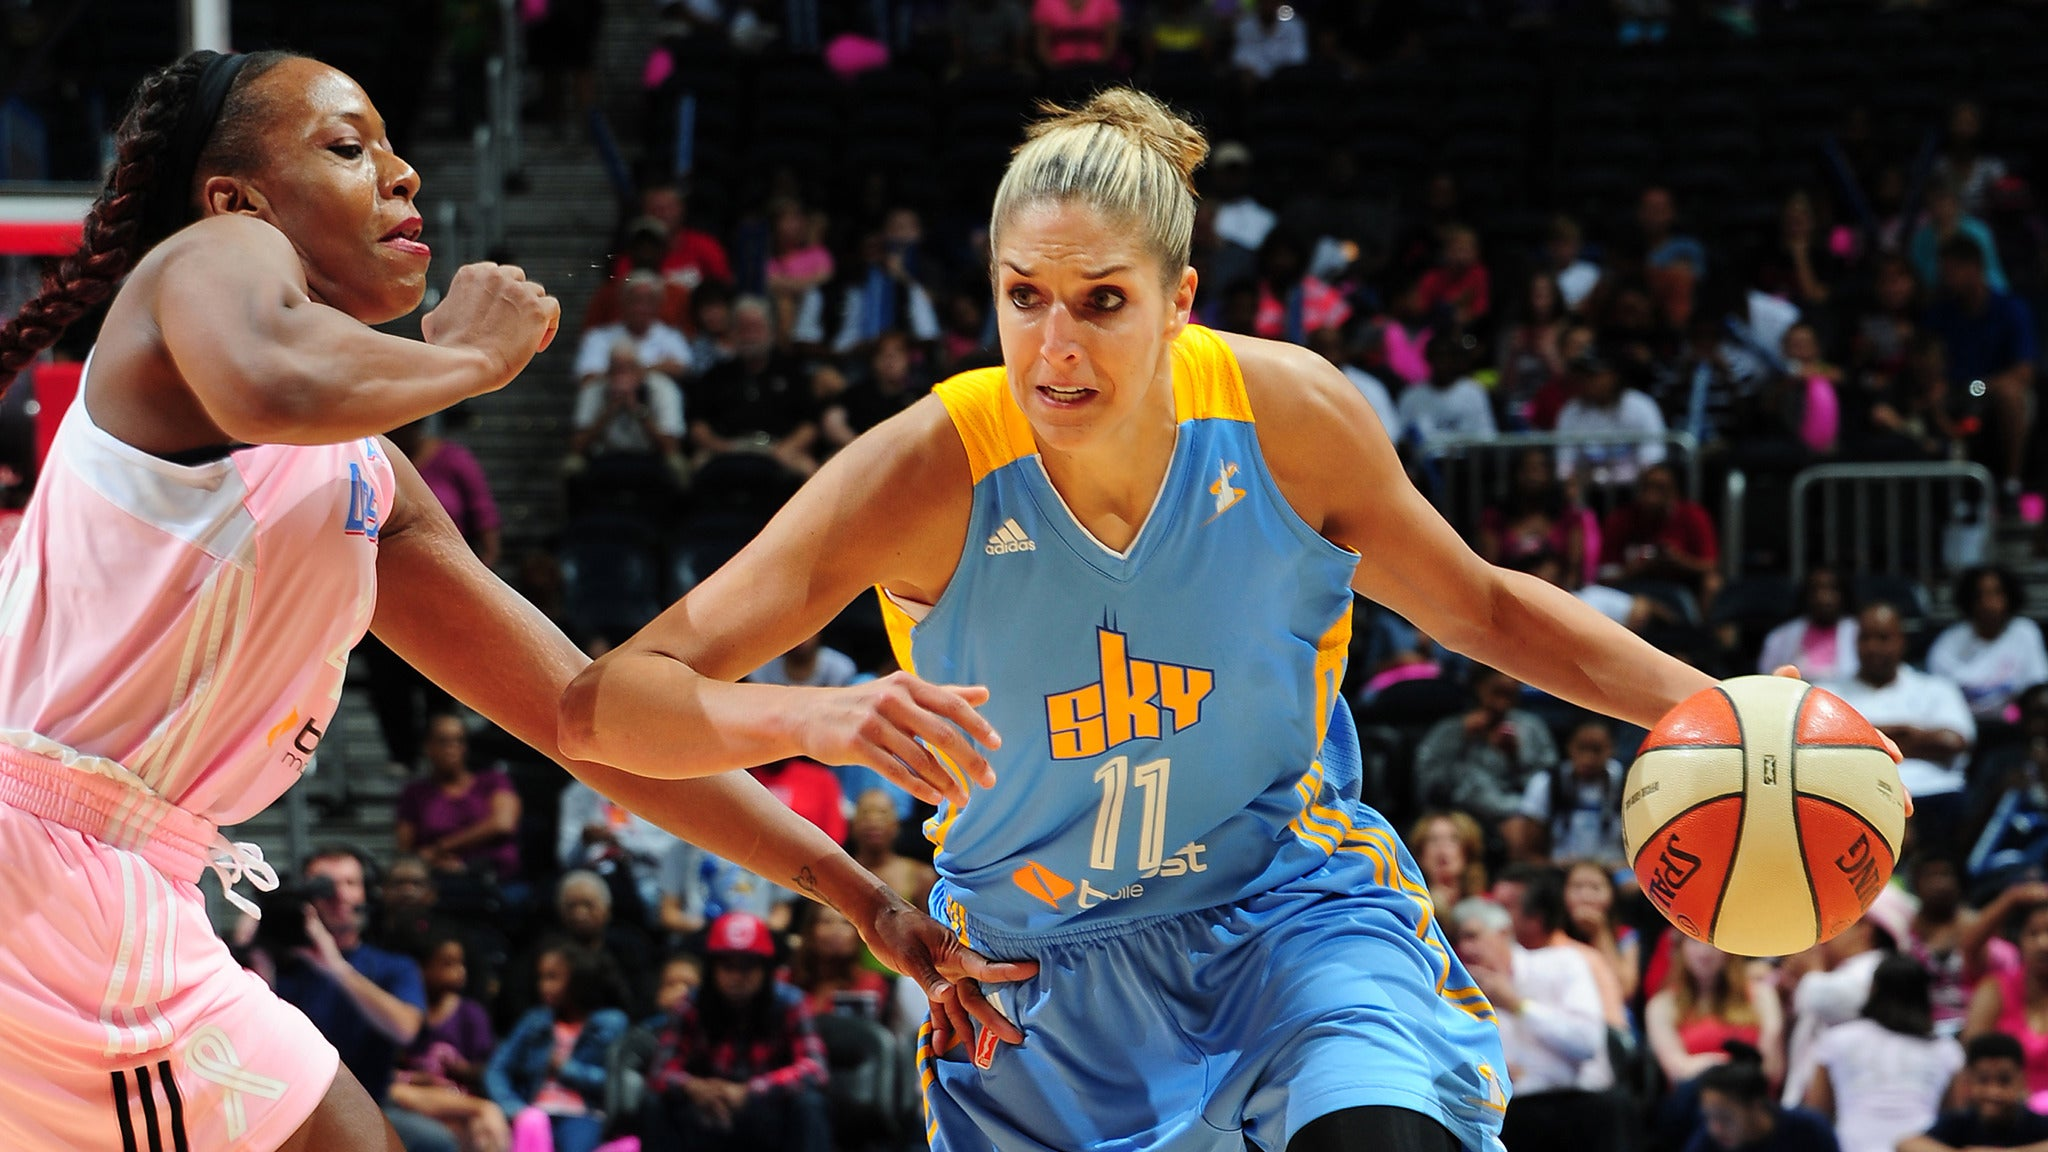 Chicago Sky vs. Seattle Storm at Allstate Arena